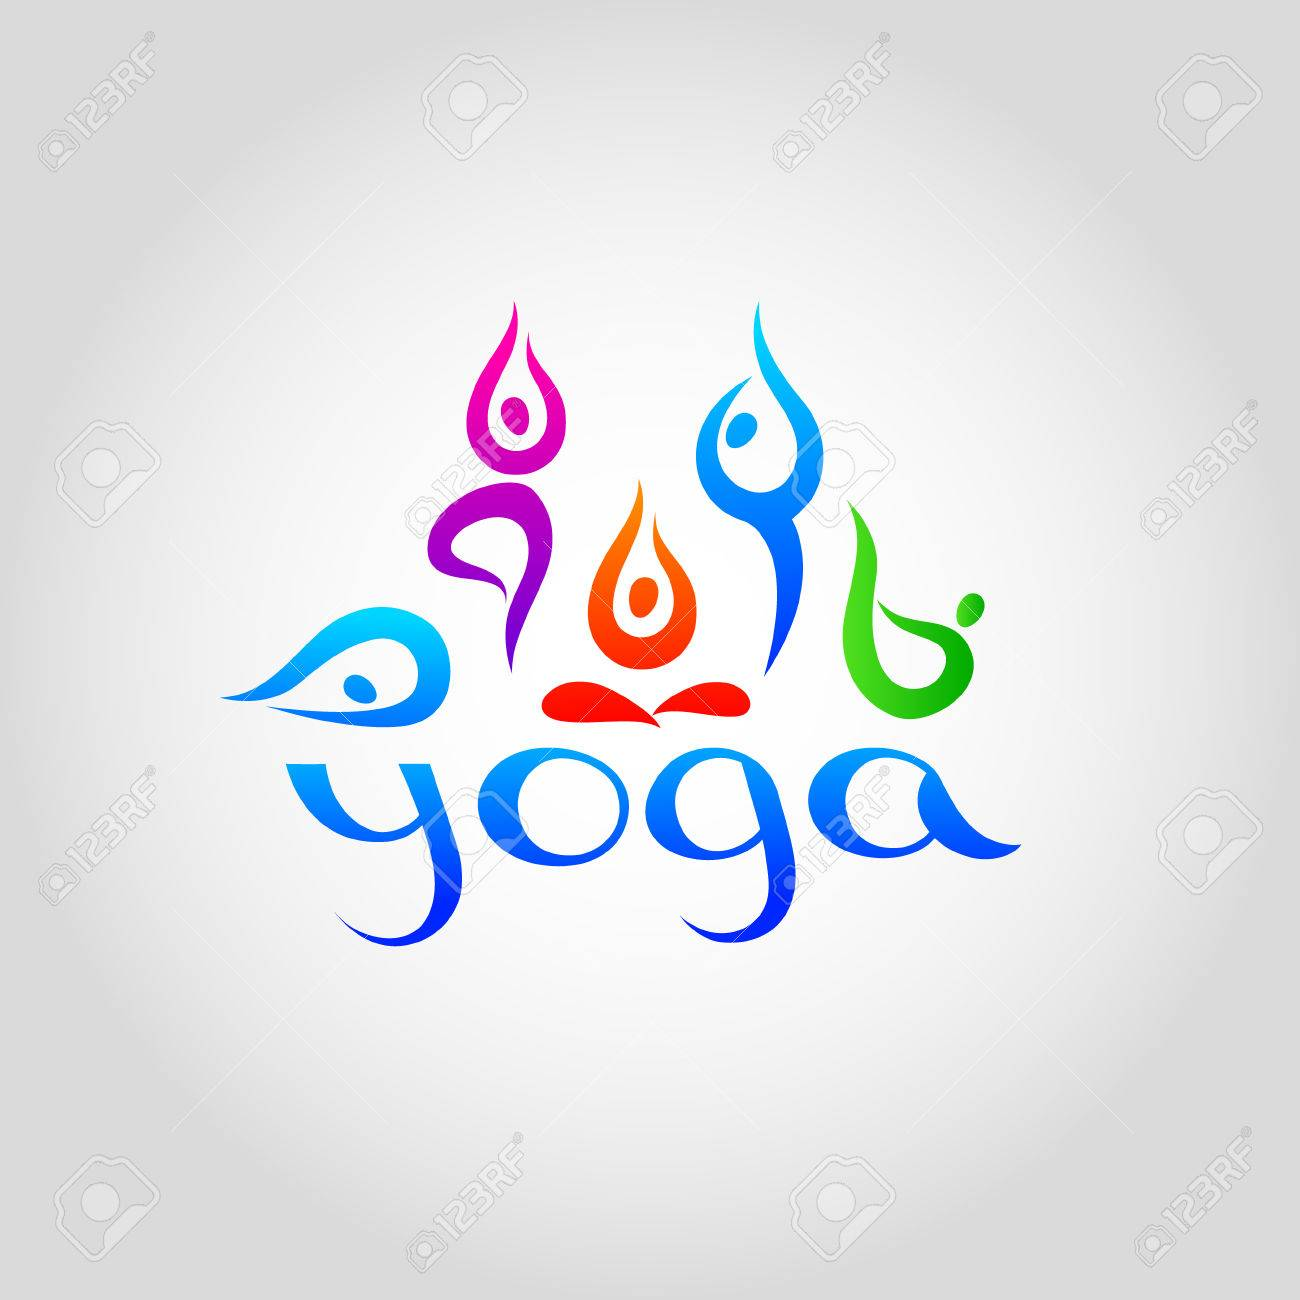 Template For Schools Of Yoga Royalty Free Cliparts Vectors And Stock Illustration Image 30352020